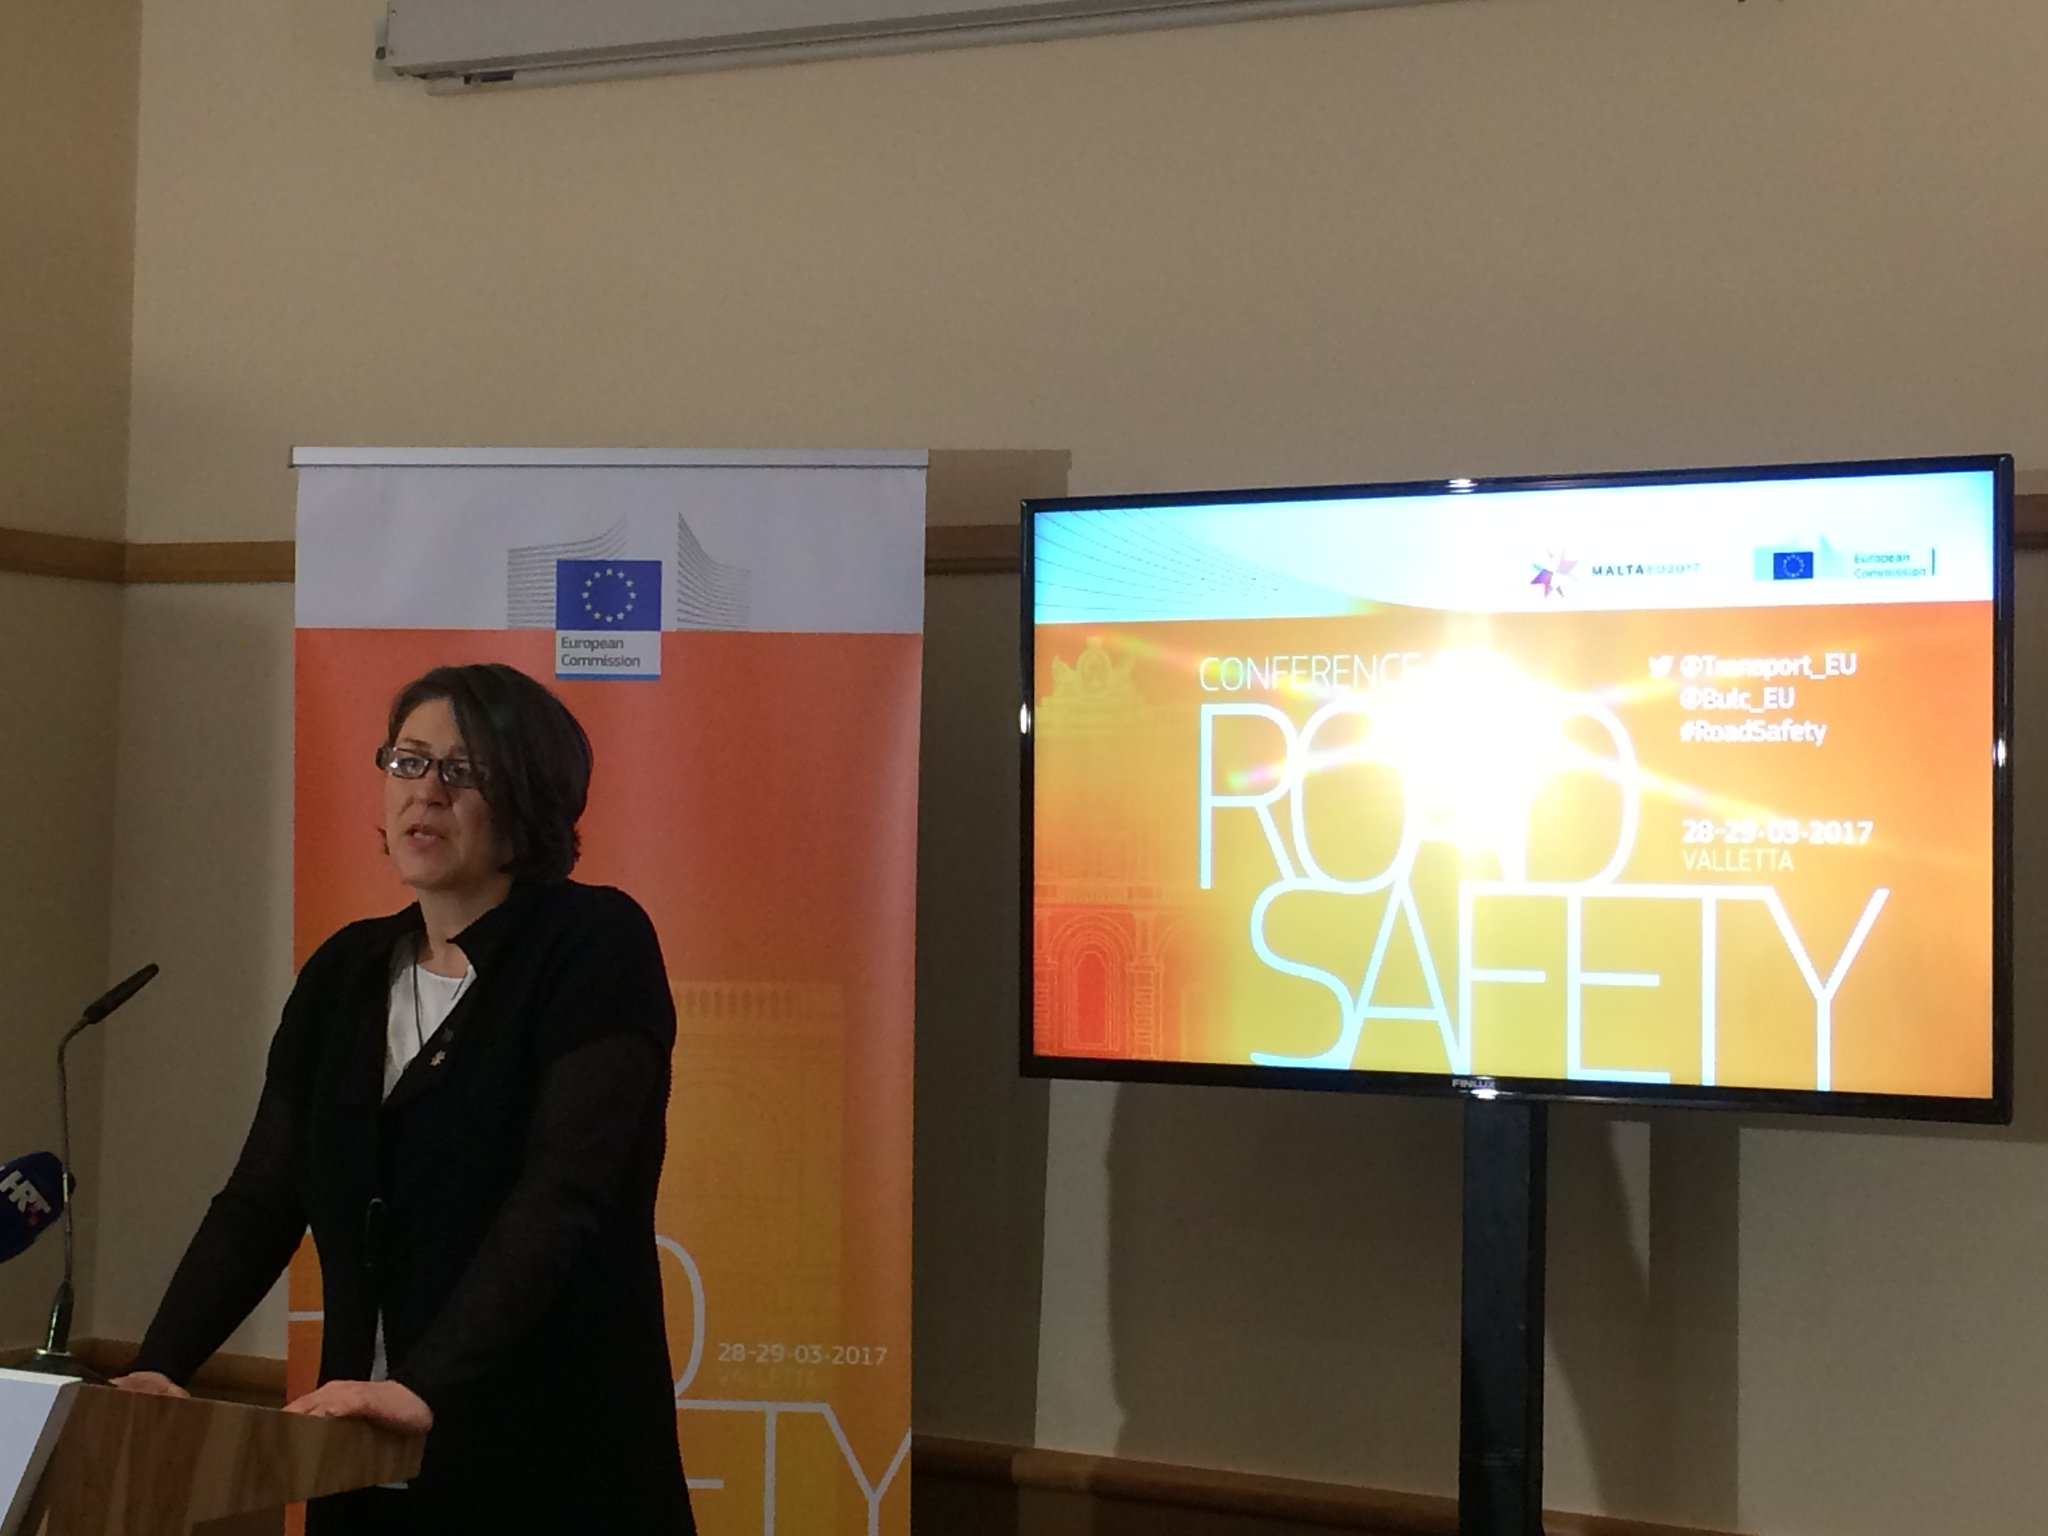 #RoadSafety : @Bulc_EU calls on continued efforts to decrease the number of road fatalities! @TISPOLorg @EuCyclistsFed @ERSCharter @EuroRAP https://t.co/wSdbGsUEy4